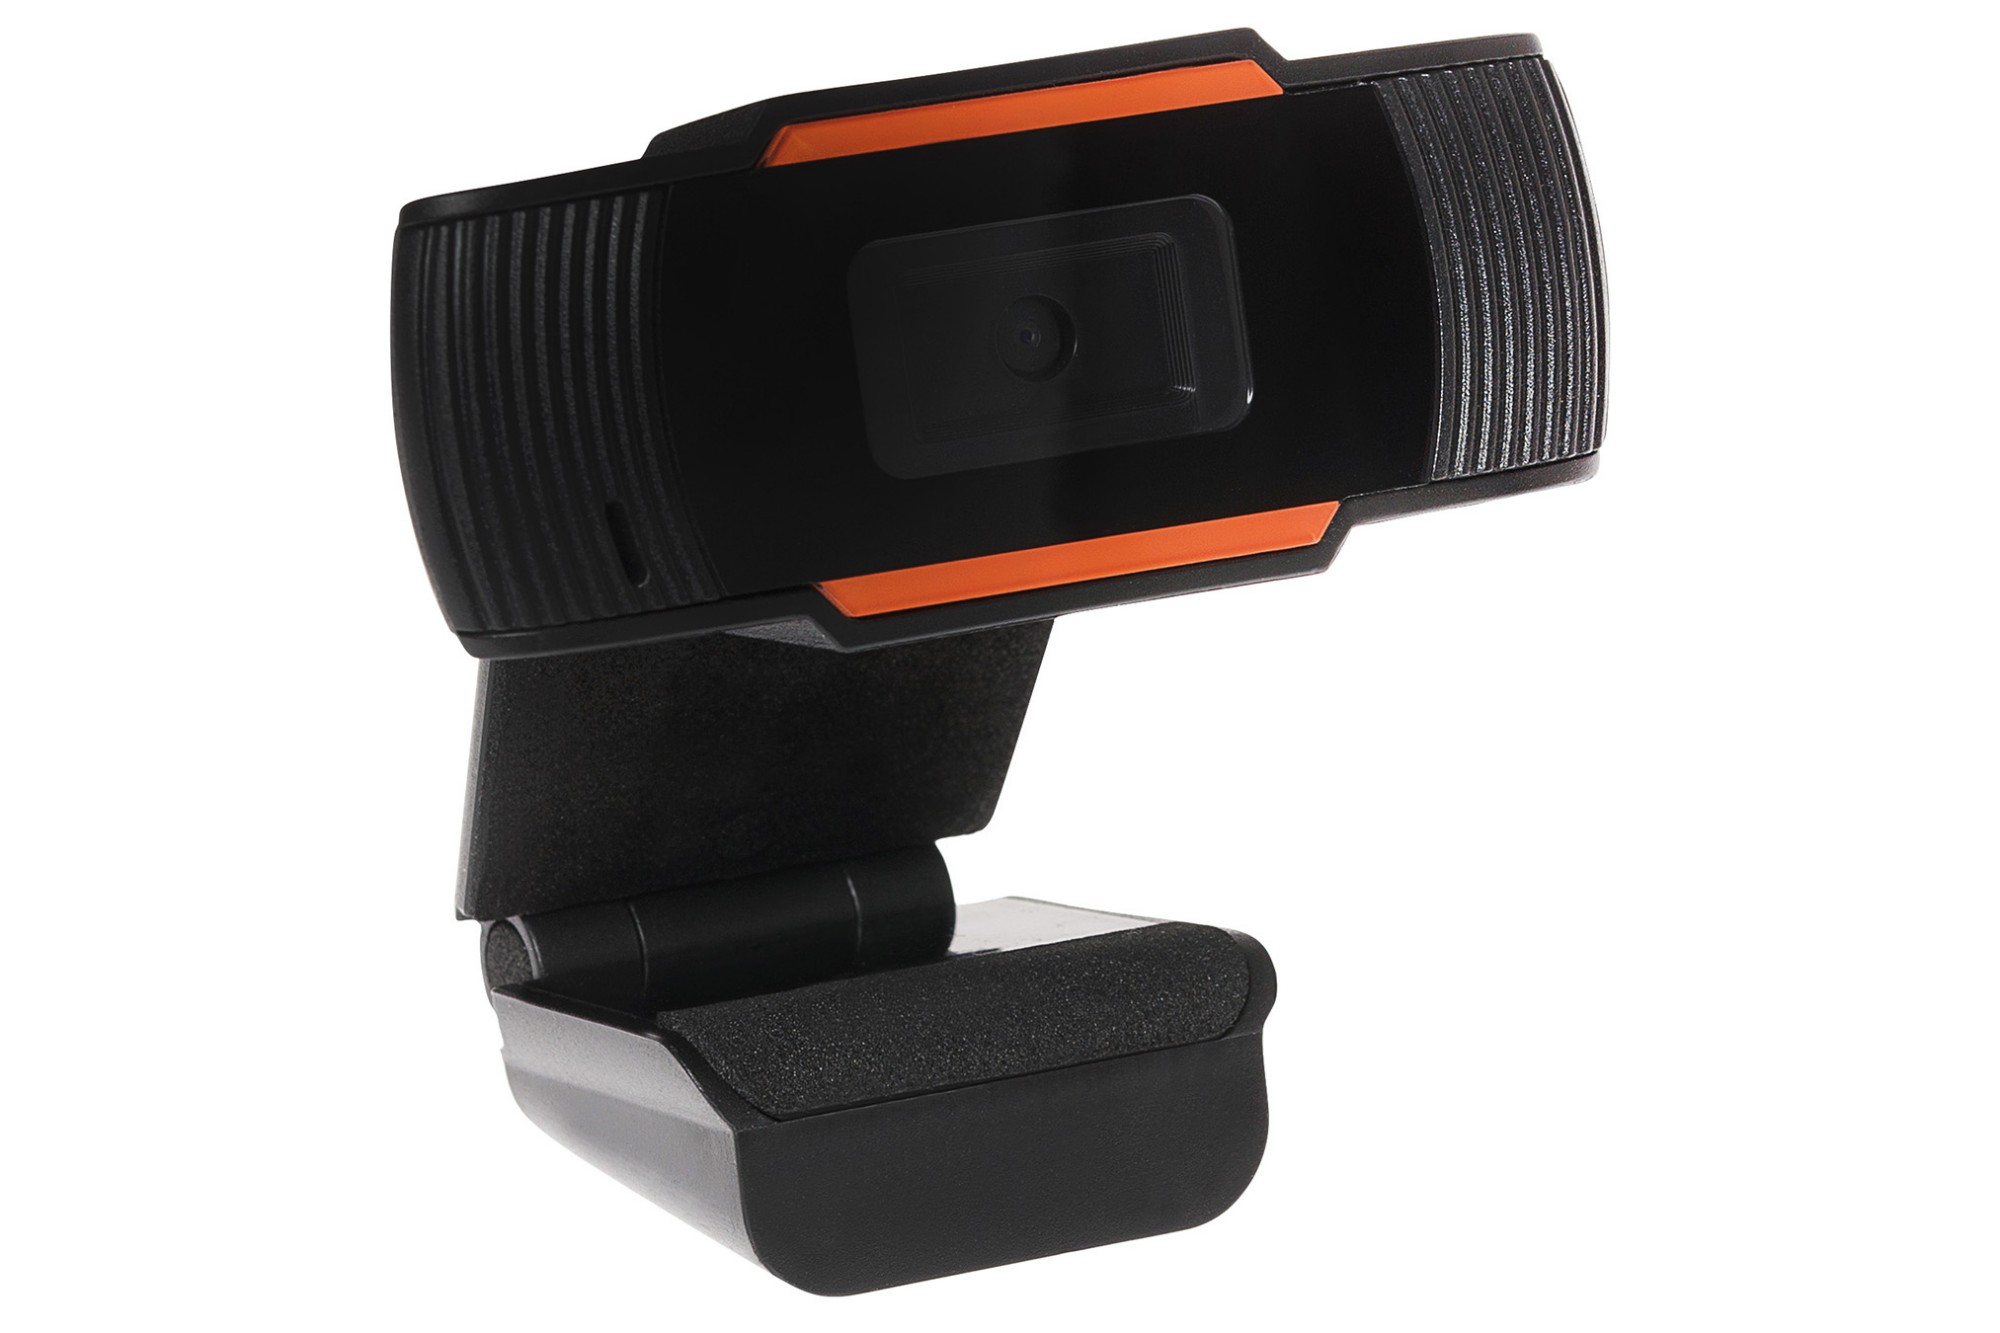 Praktica USB Webcam High Definition with Built in Noise Reduction Microphone